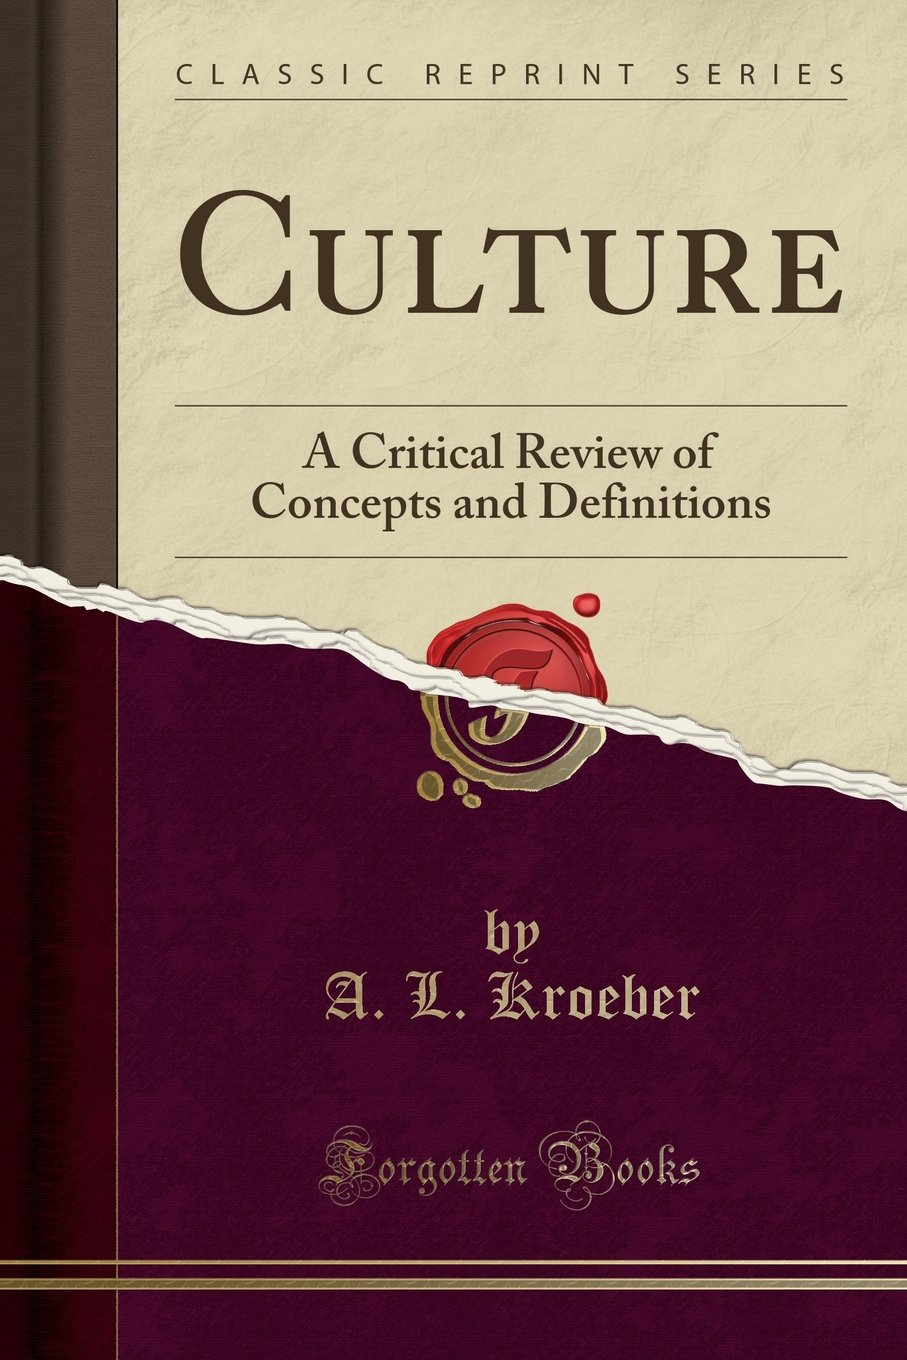 "Culture ""Concepts"" as Combination of Ontic Claims10 min read"